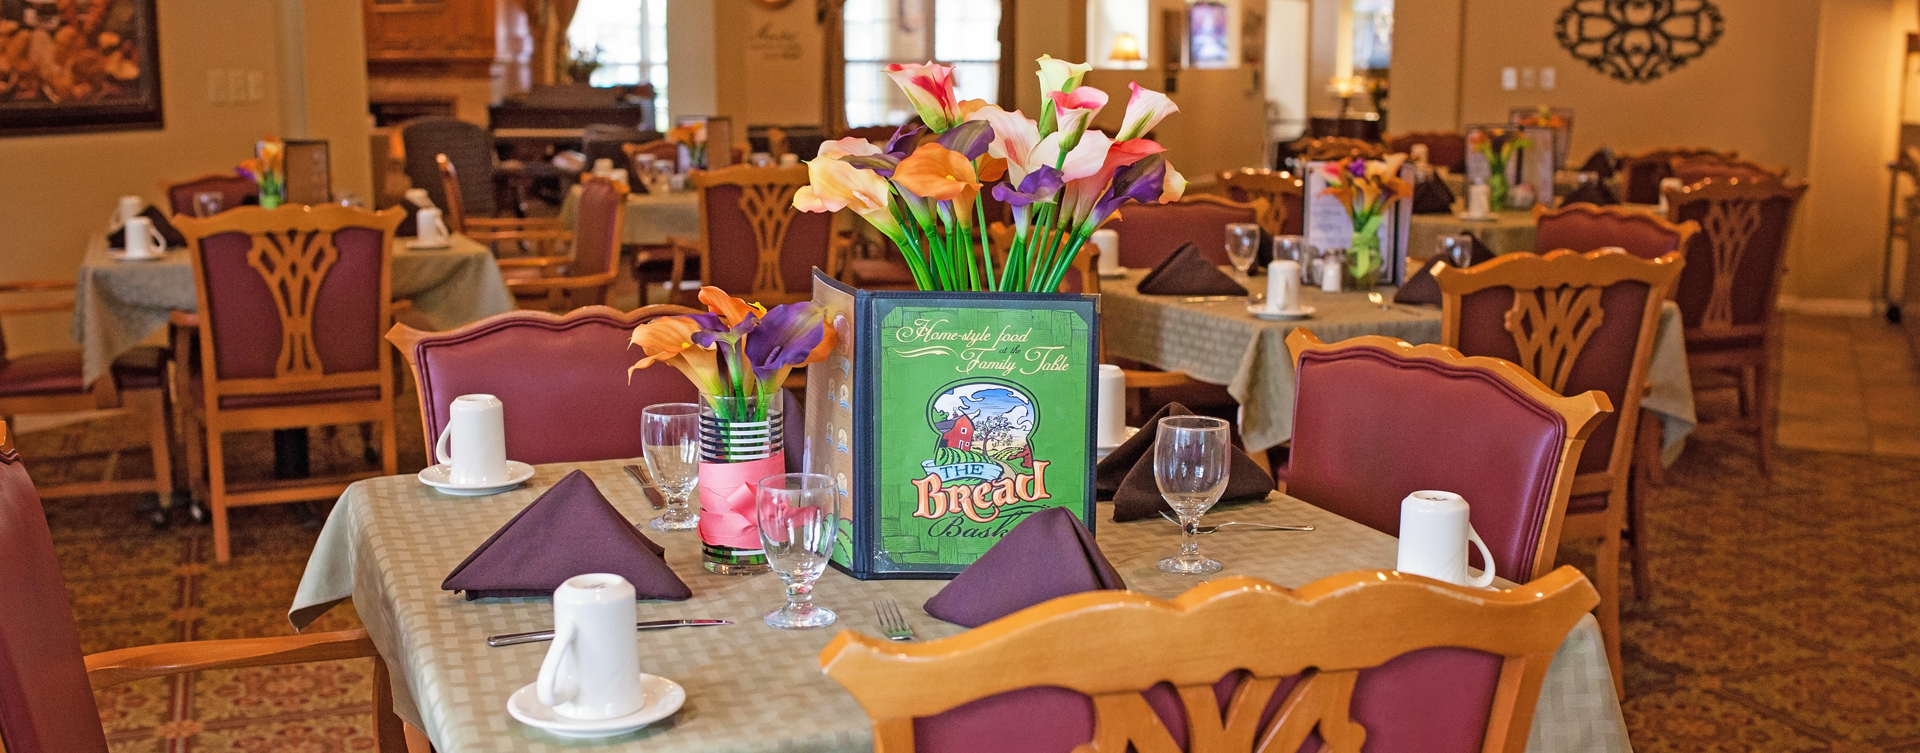 Food is best when shared with friends in the dining room at Bickford of Cedar Falls